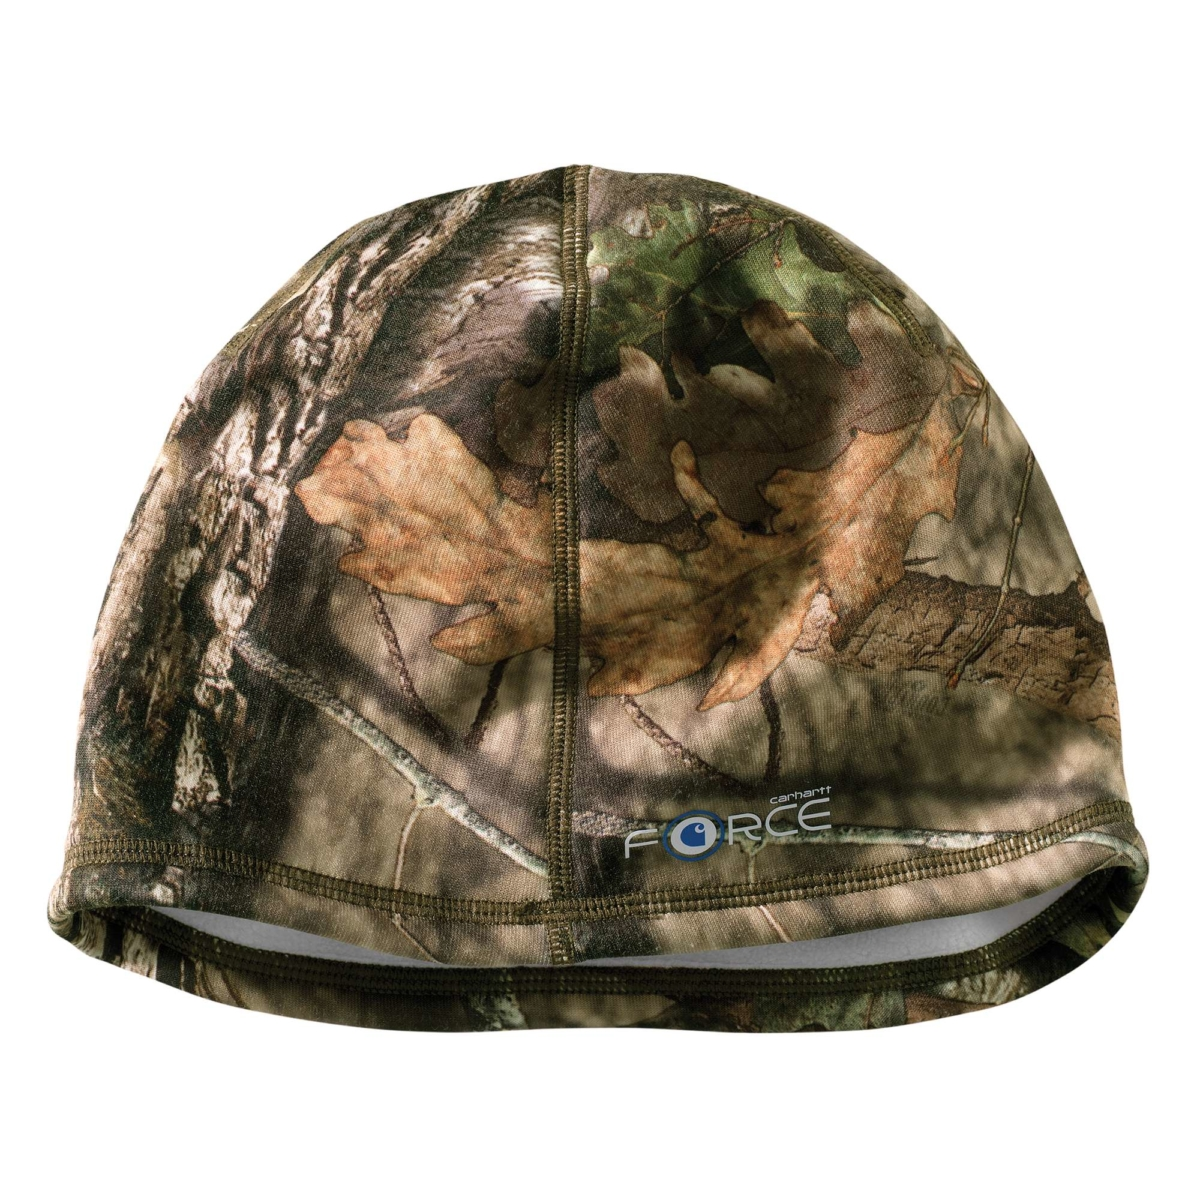 Carhartt Carhartt Force Lewisville Camo Hat Up Country USA - GOOFASH - Mens HATS